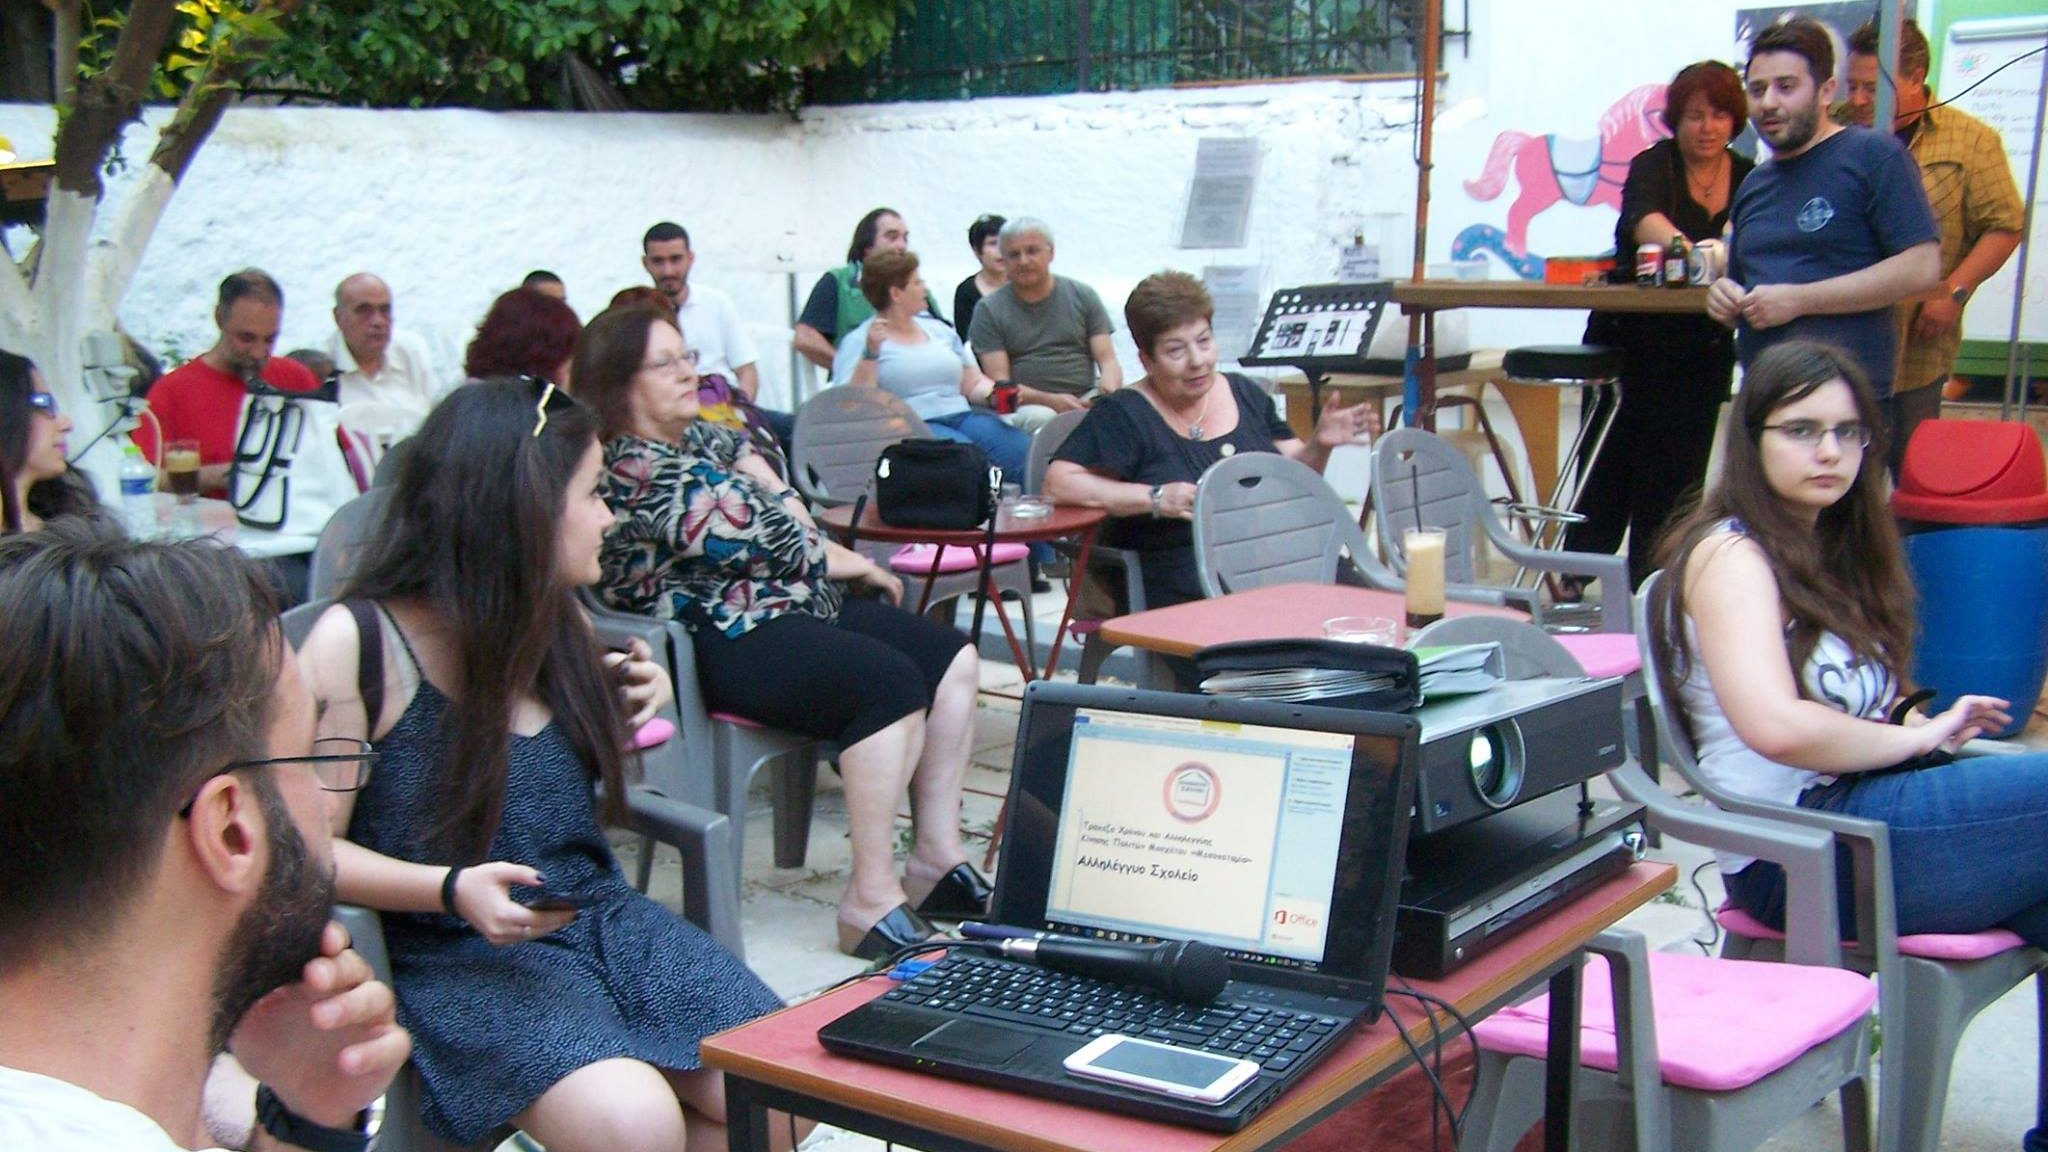 public-meeting-with-technology